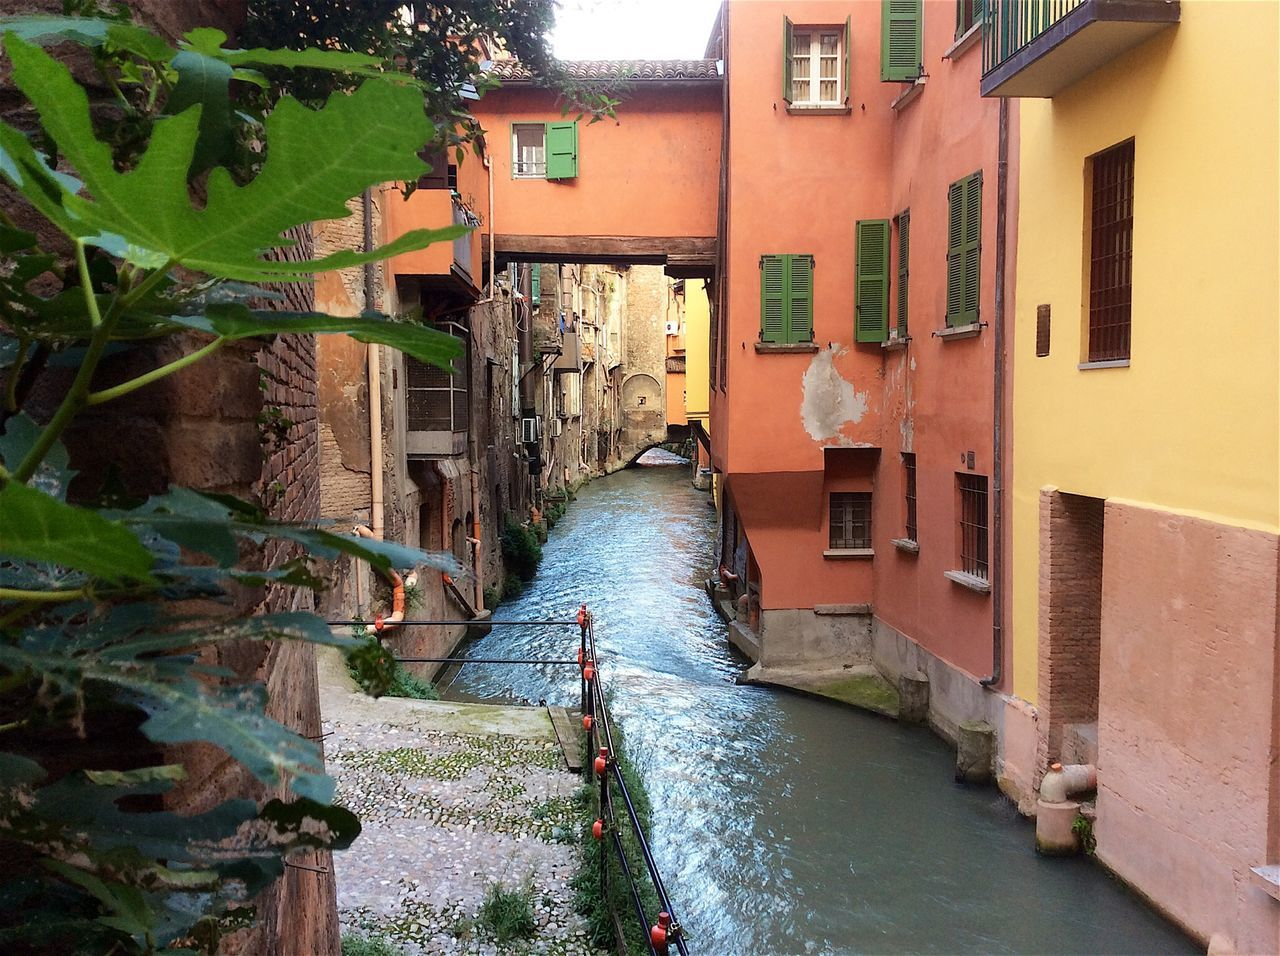 Bologna Italia River Architecture Building Built Structure Building Exterior Diminishing Perspective House Residential District Streetphotography Street Photography Water Window Pastel Power